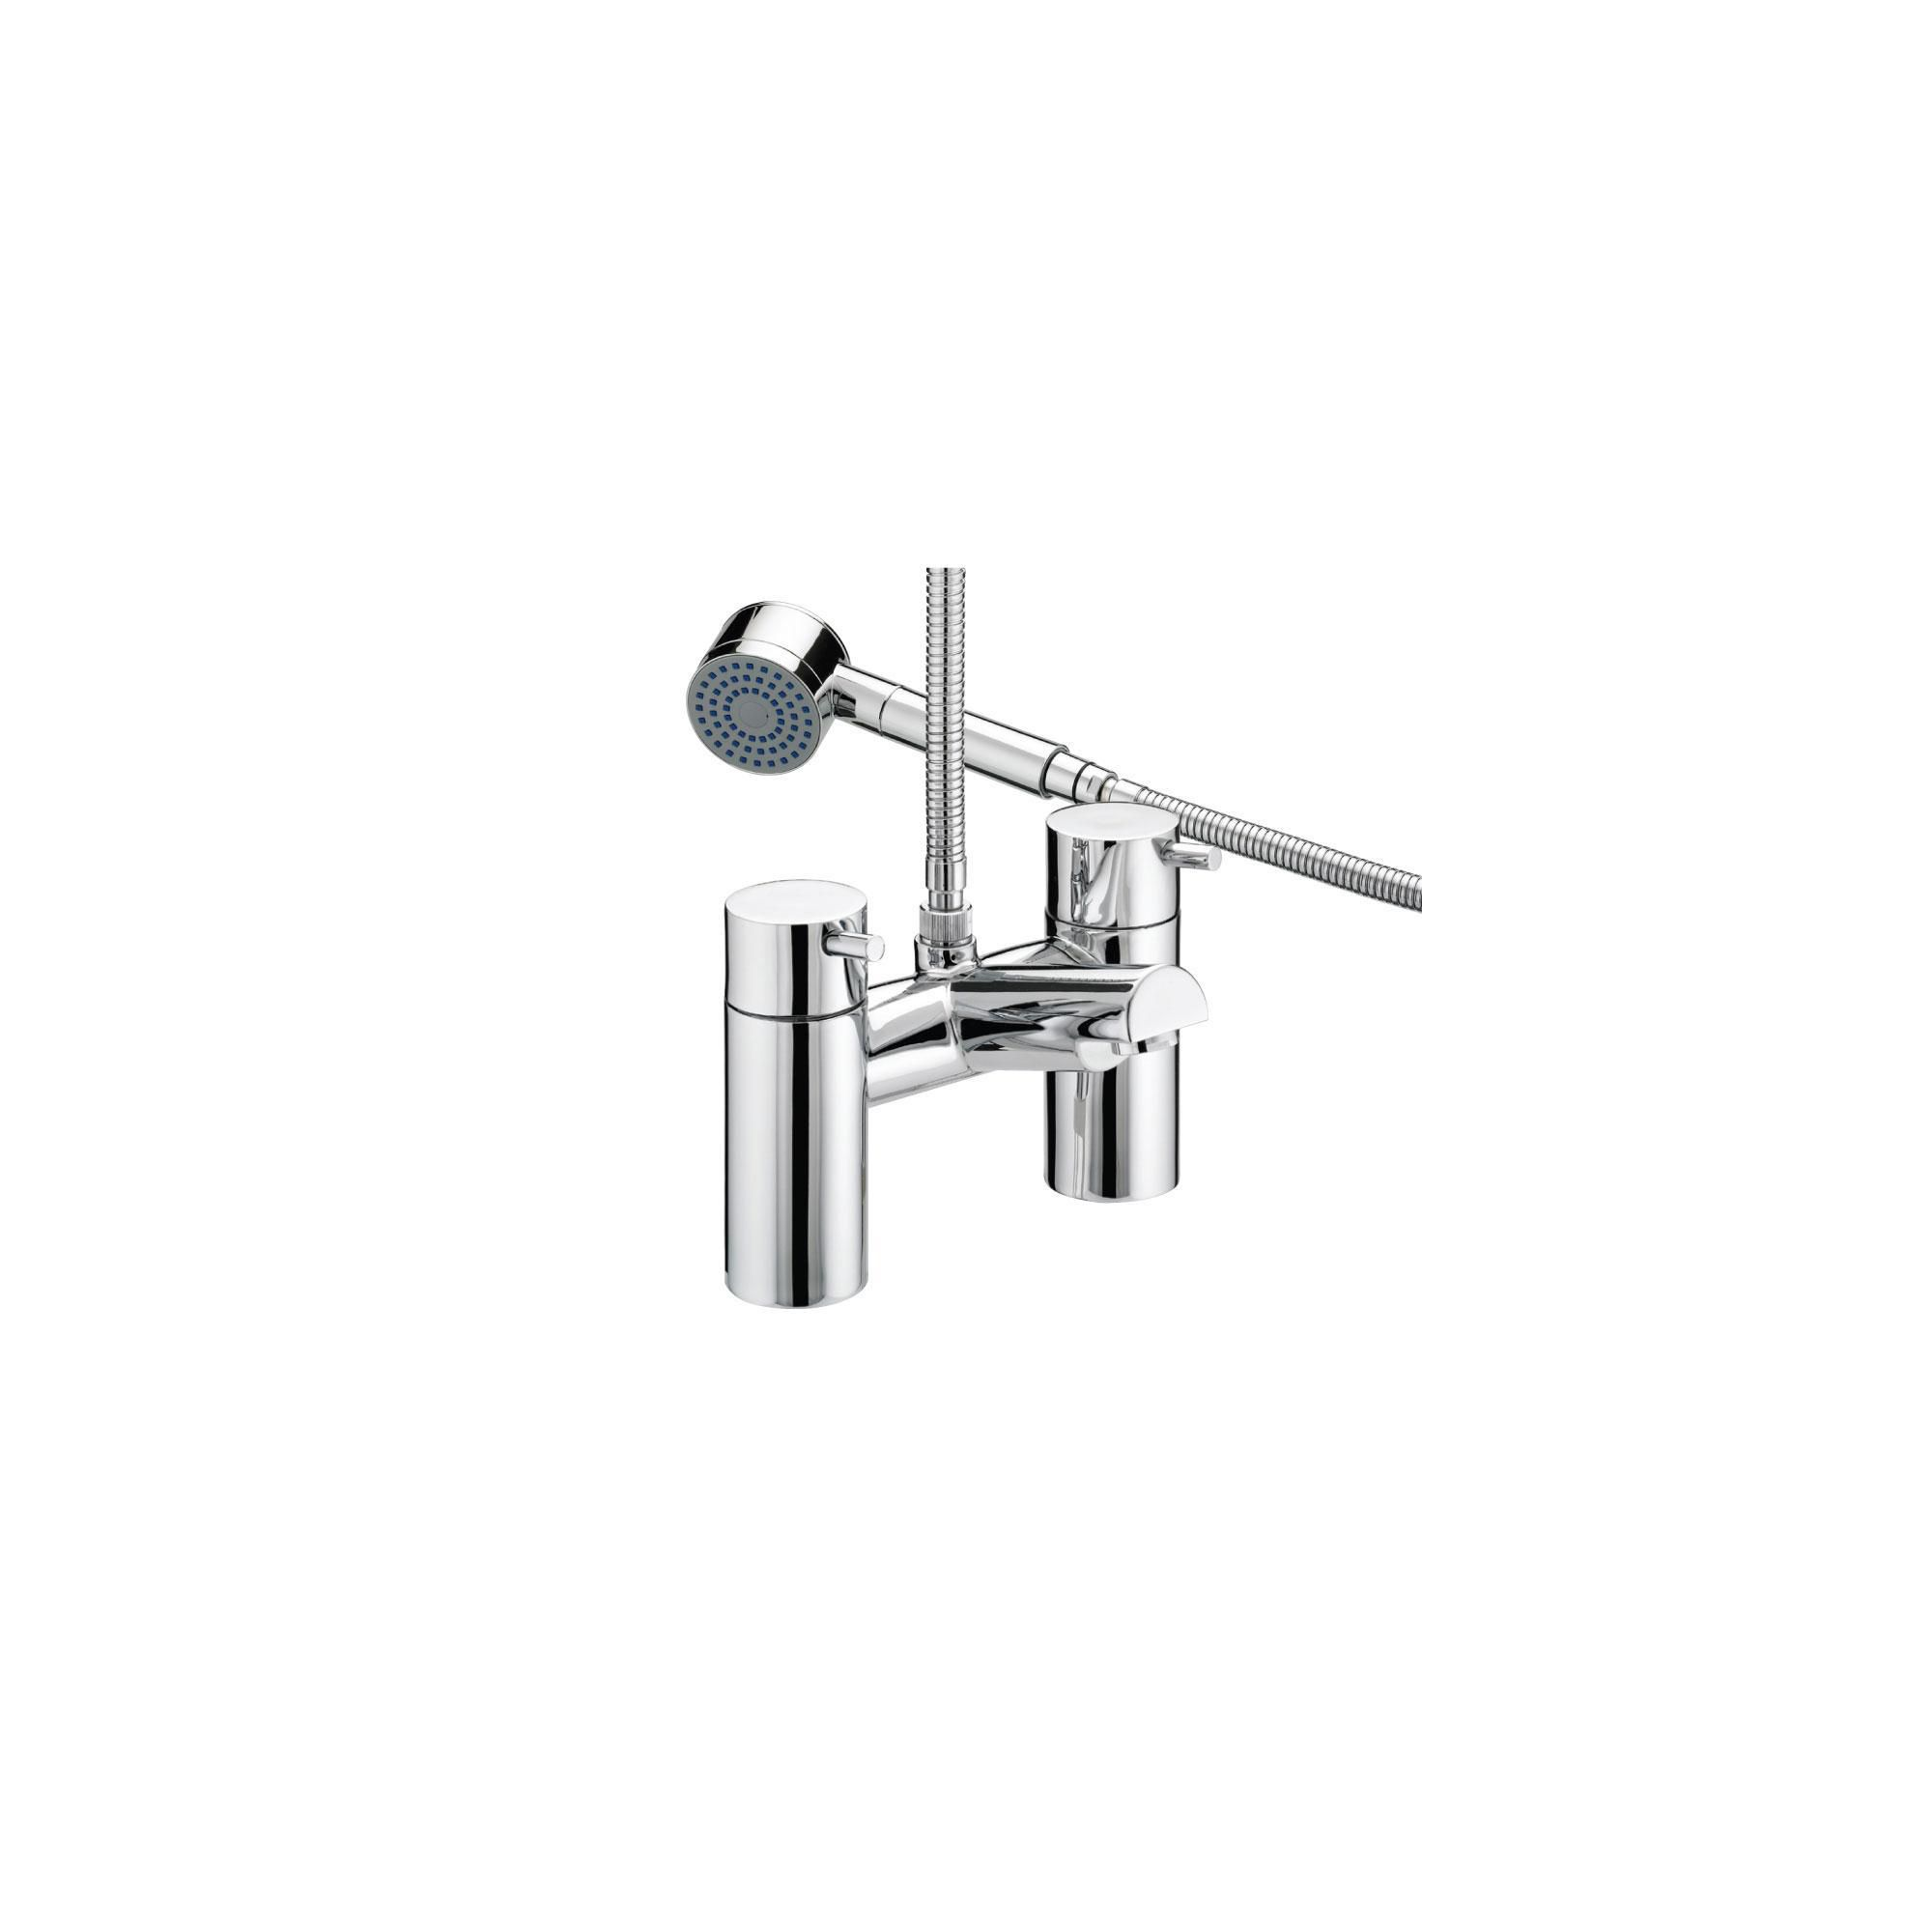 Bristan Prism Thermostatic Pillar Bath Shower Mixer Tap Chrome Plated at Tesco Direct